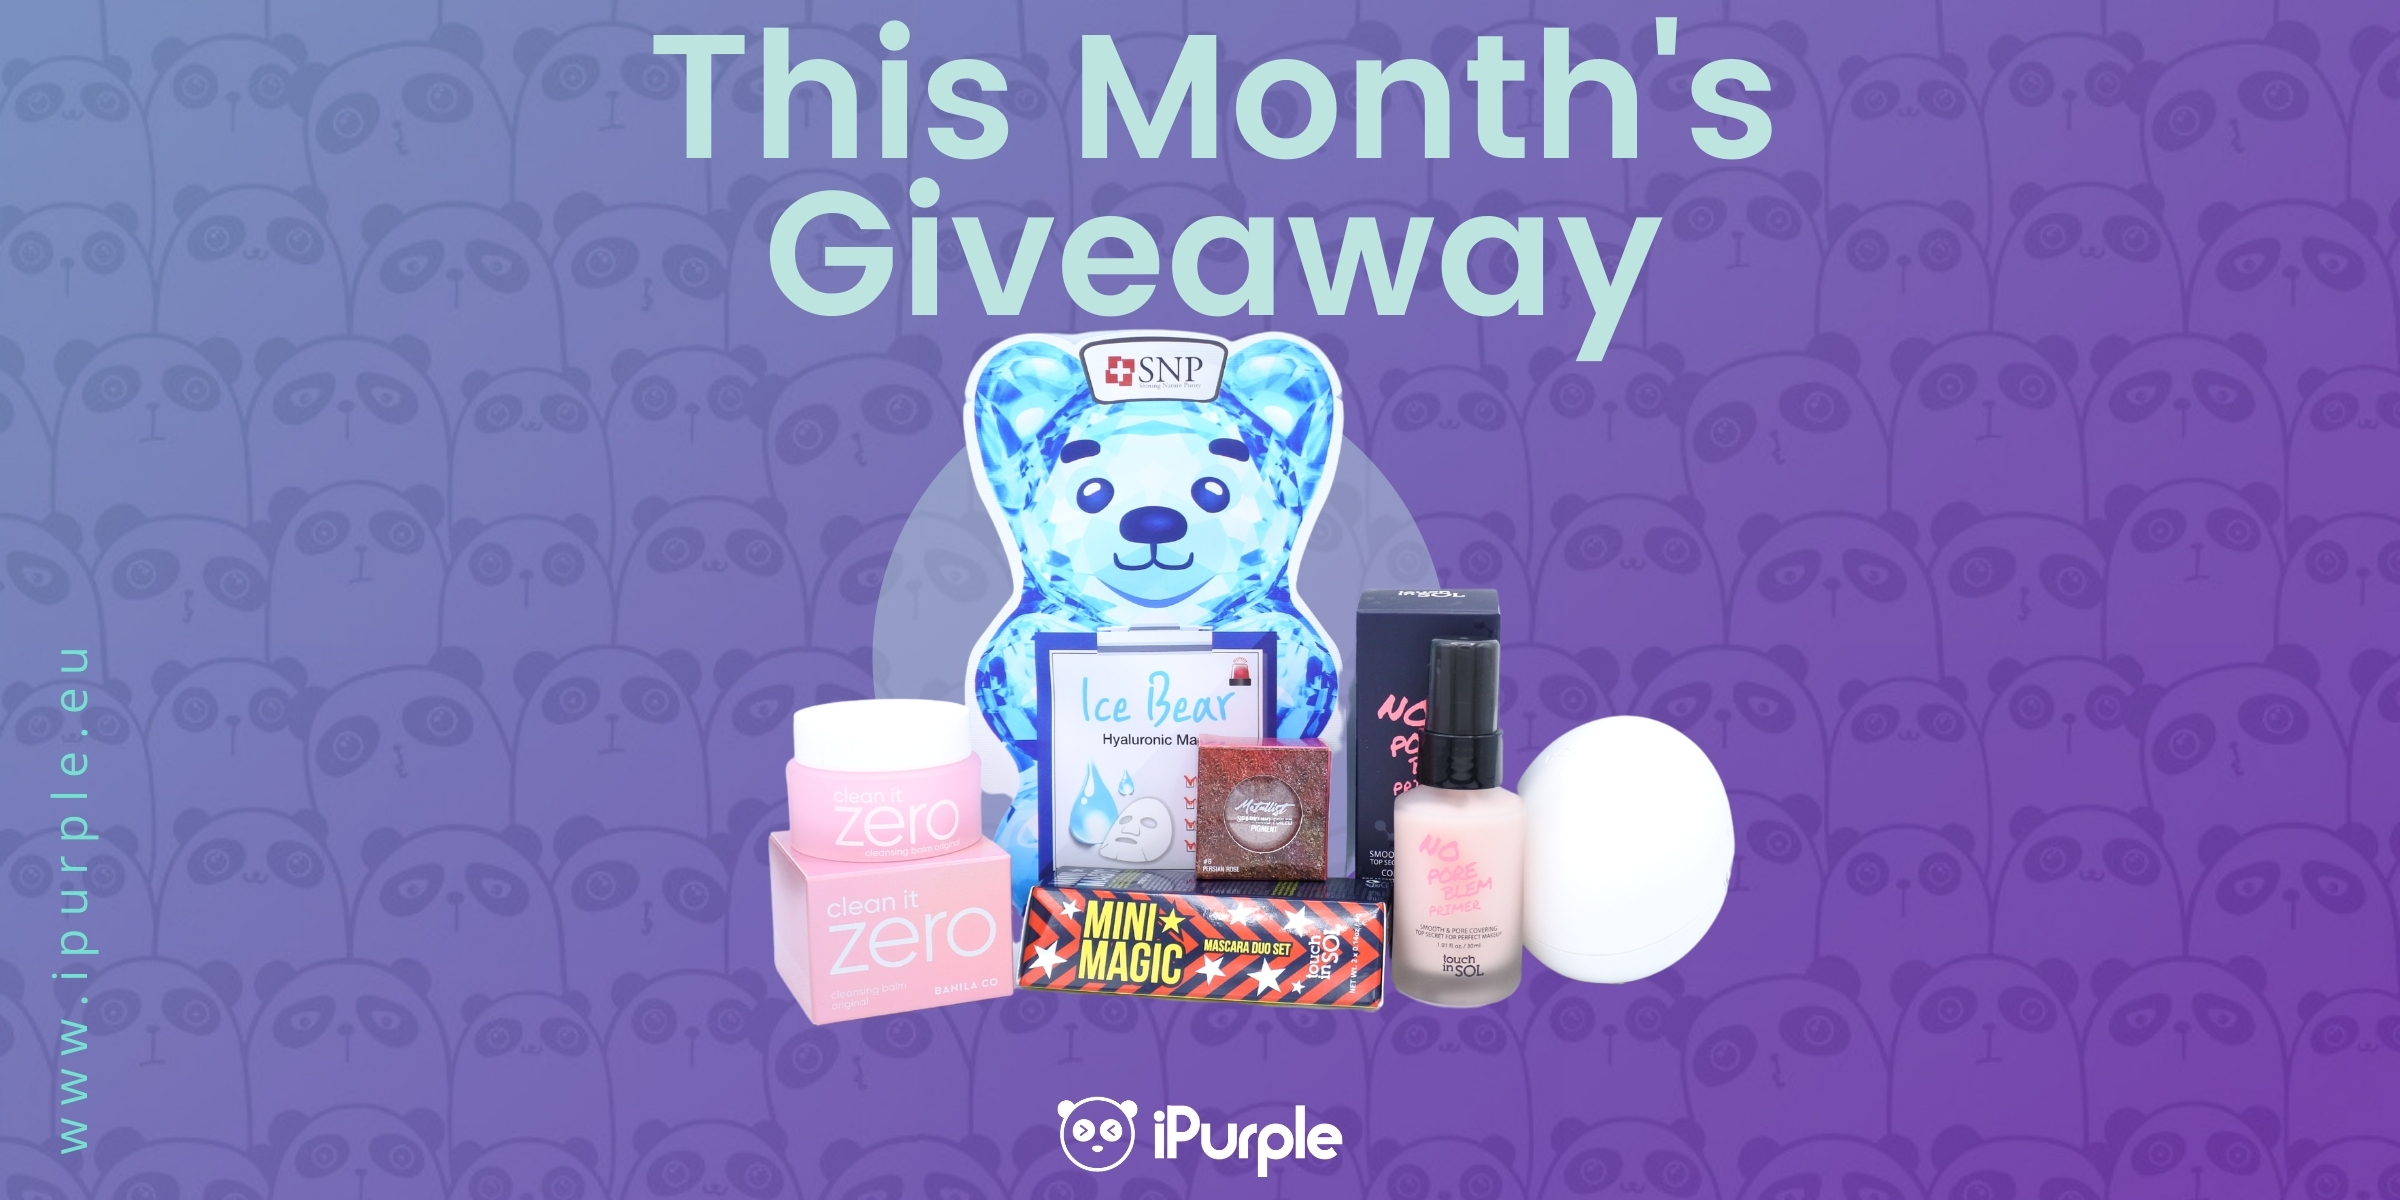 This Month's Giveaway